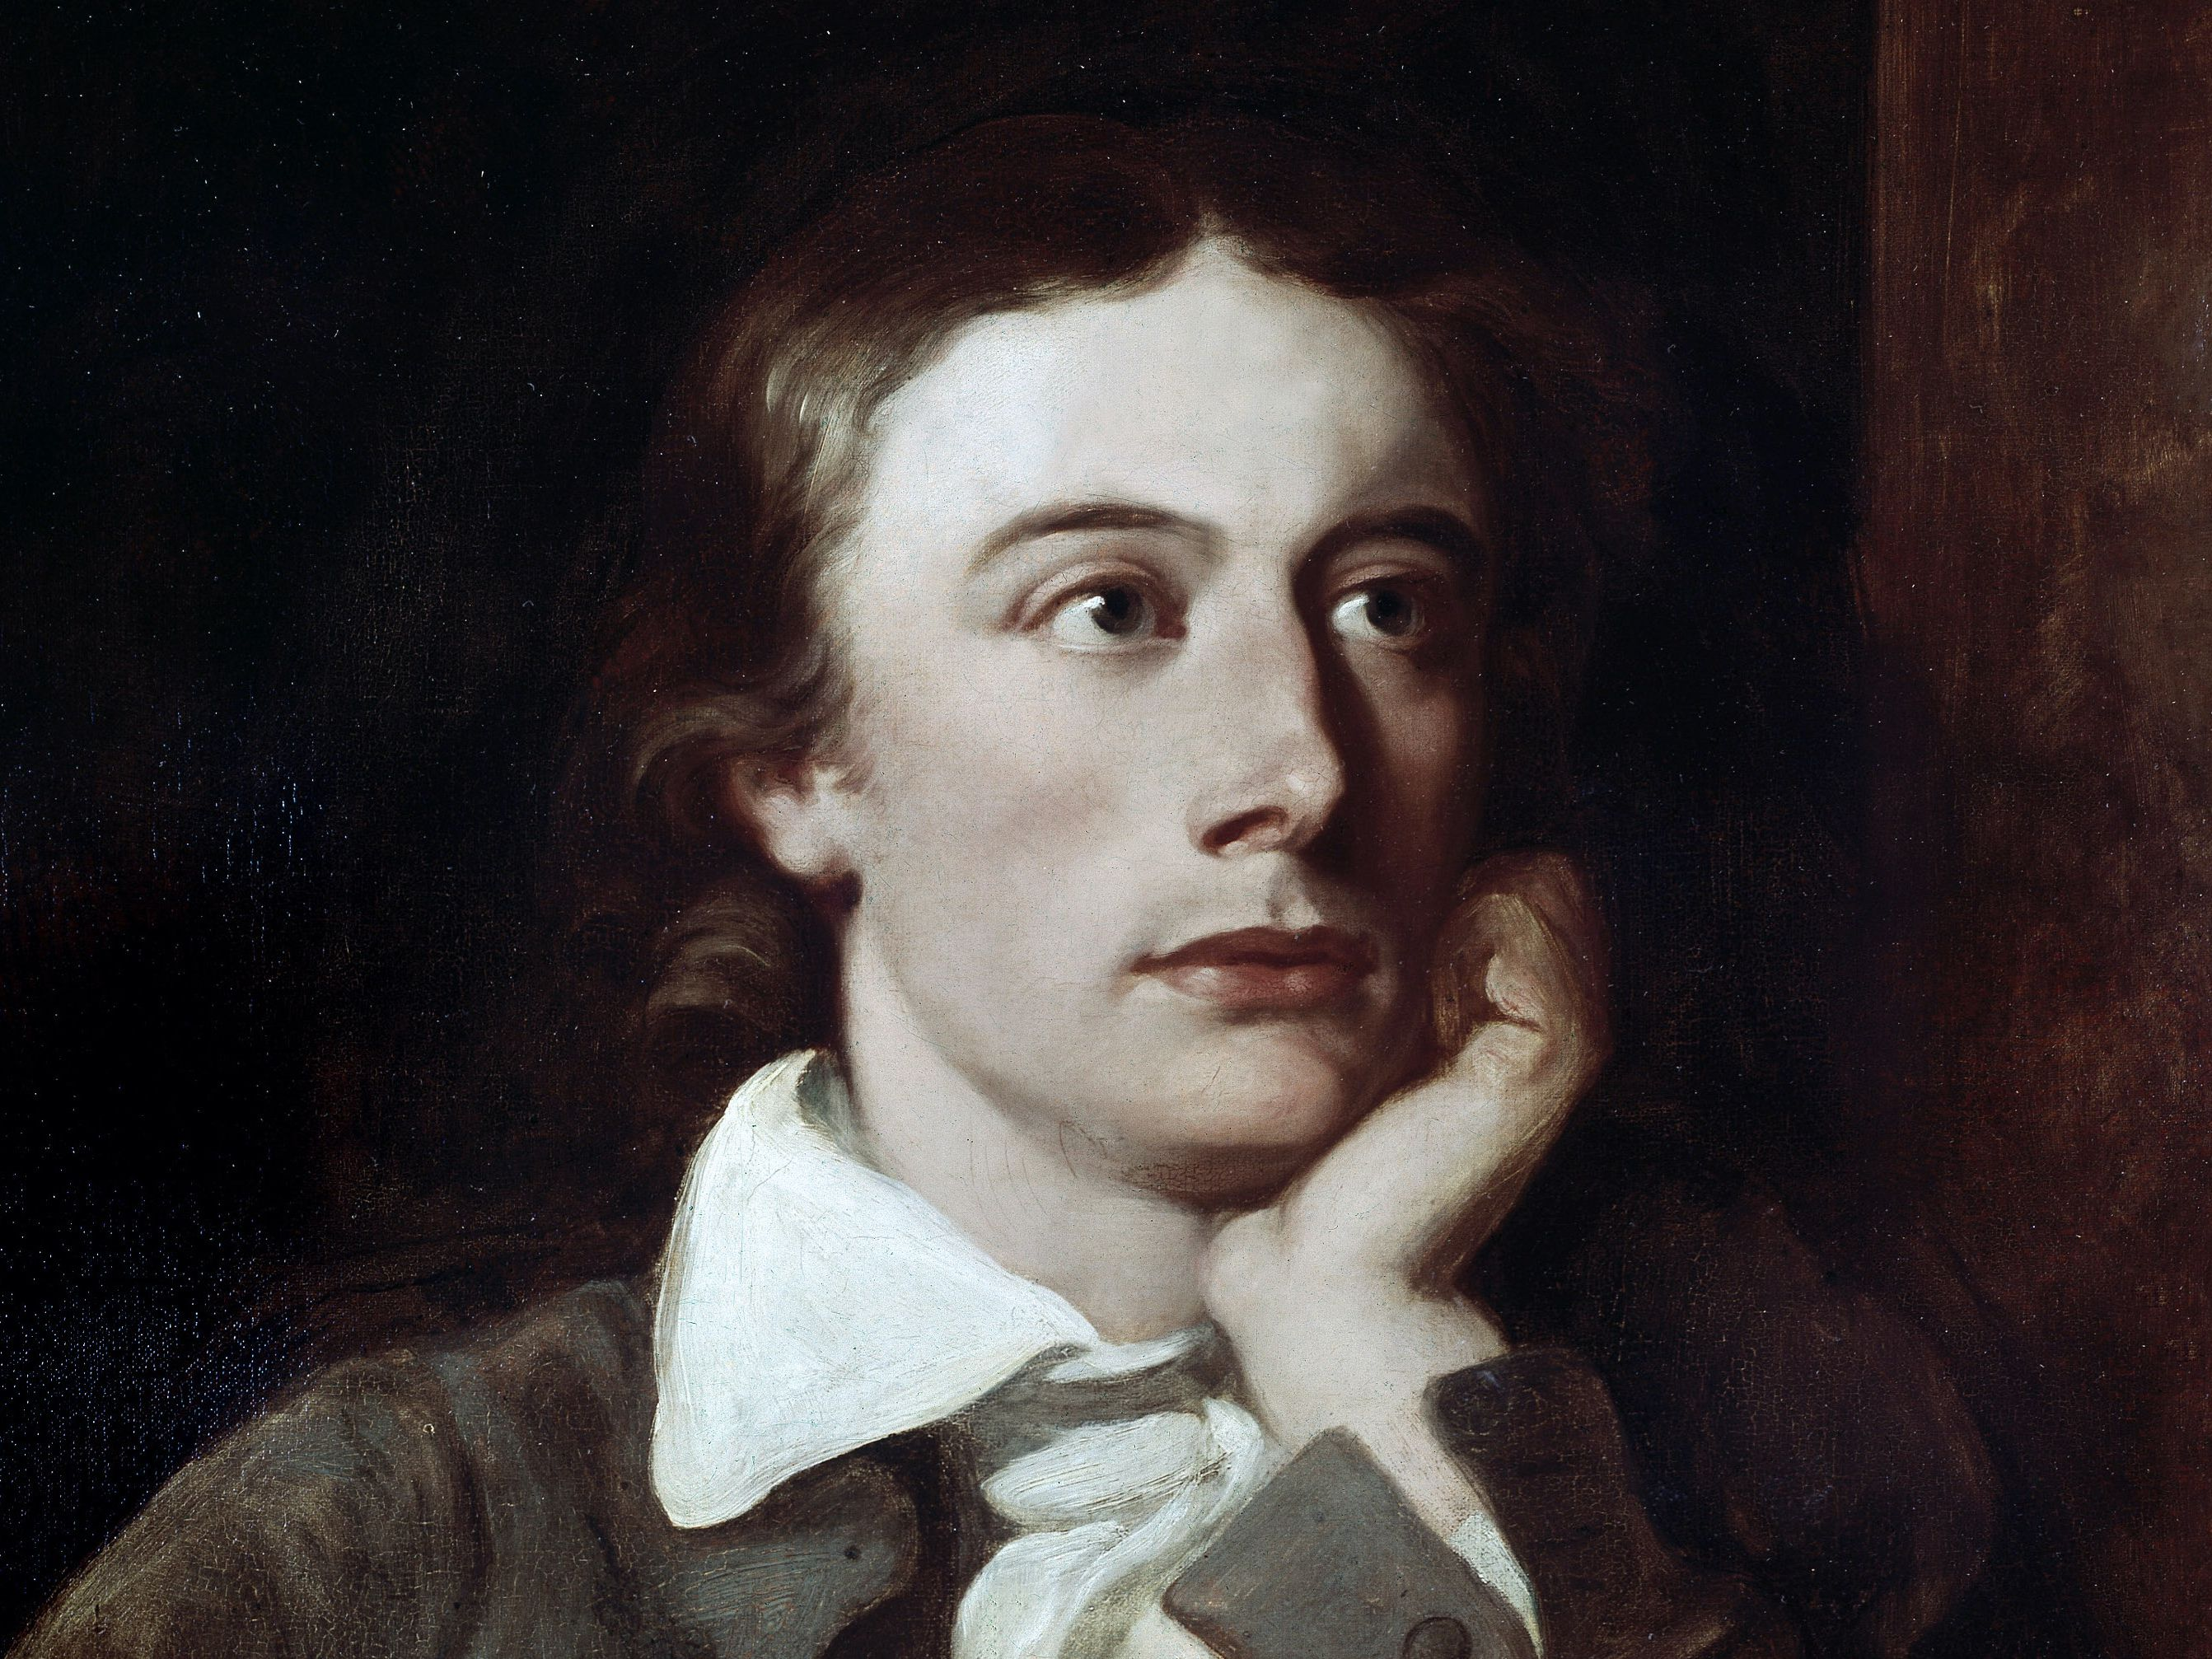 Biography of John Keats, English Romantic Poet